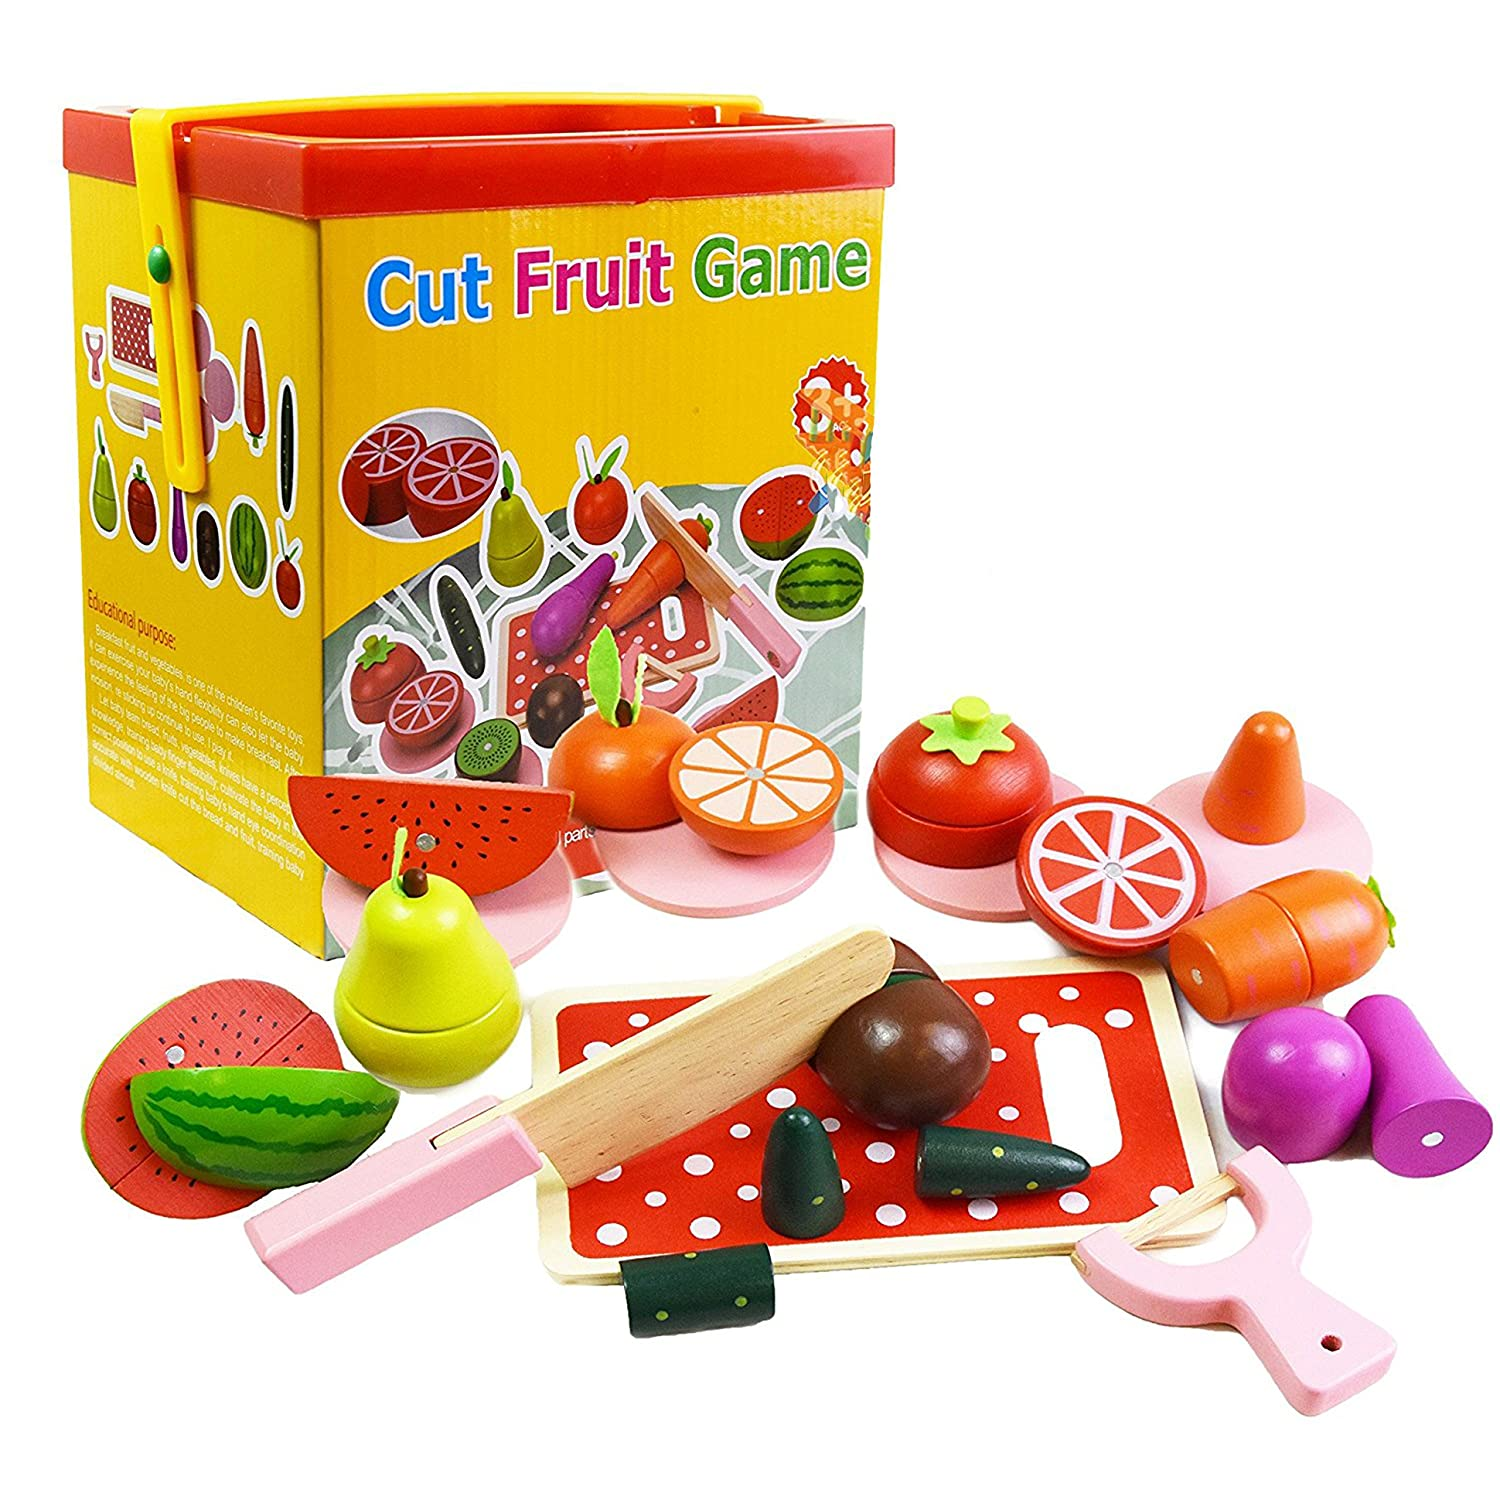 Cut fruits game - Wooden Magnetic Cut Fruit Veg Blocks Pretend Kitchen Play Food Cutting Toy Amazon Co Uk Toys Games